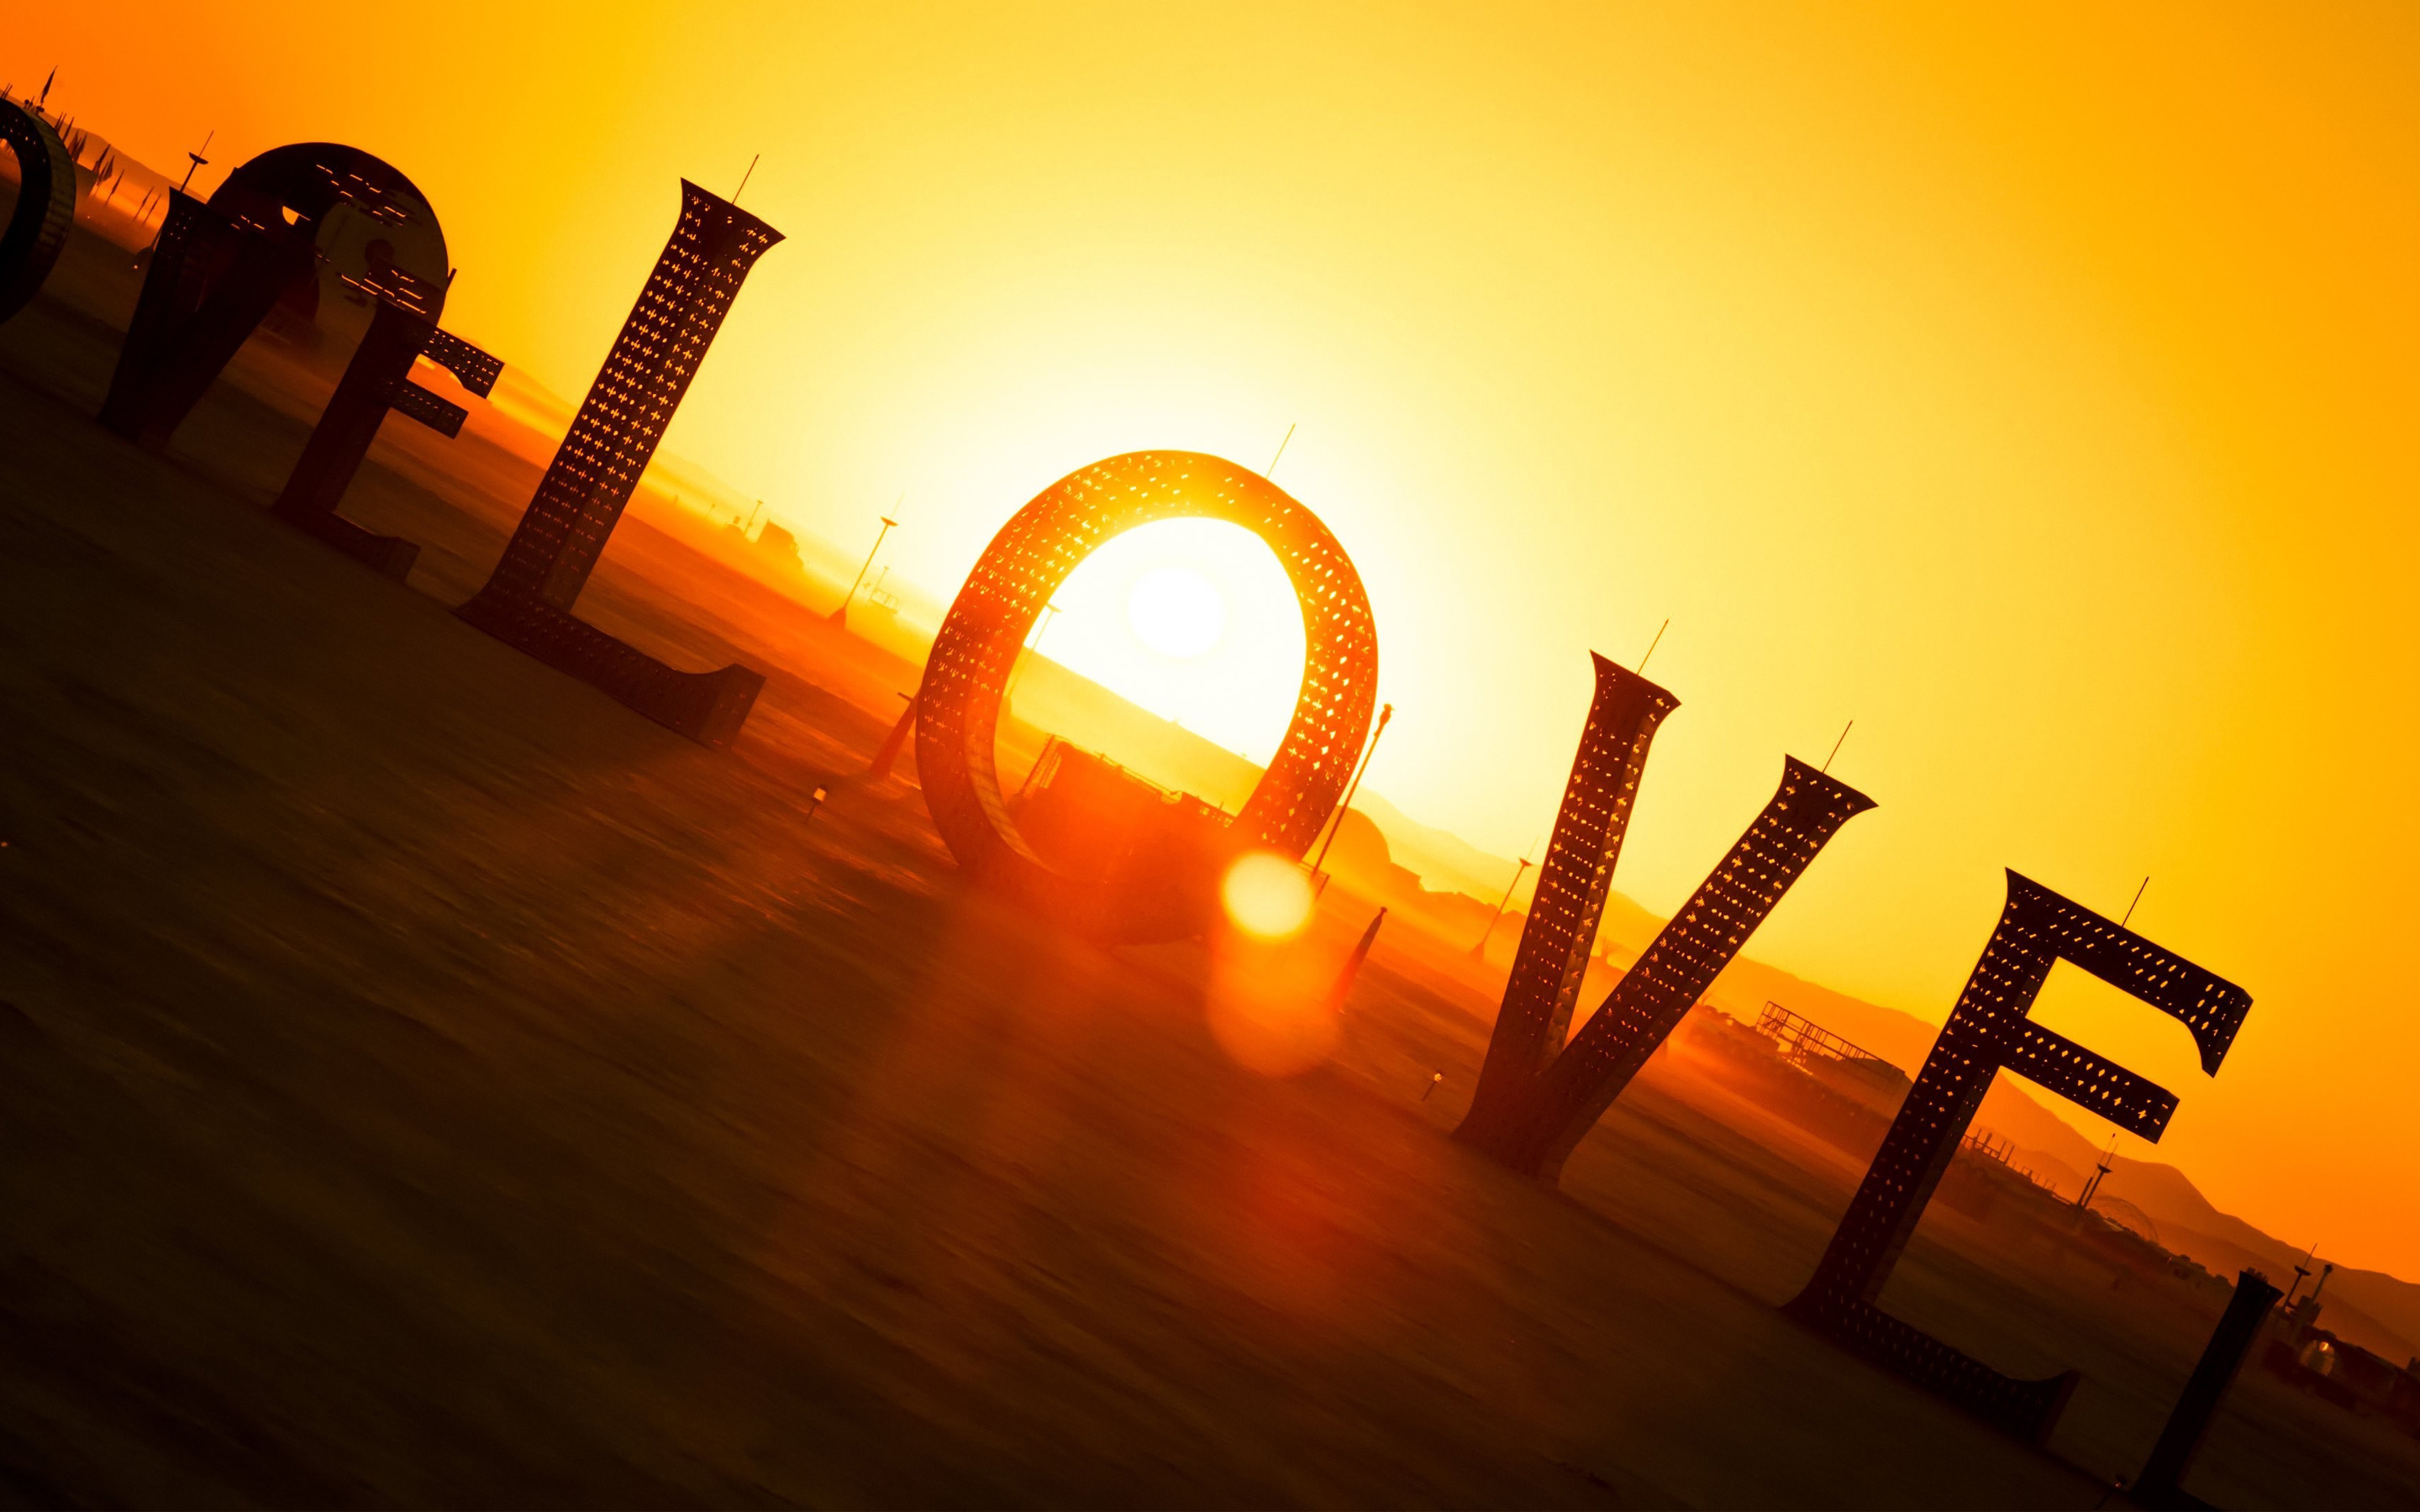 sunset love, hd love, 4k wallpapers, images, backgrounds, photos and